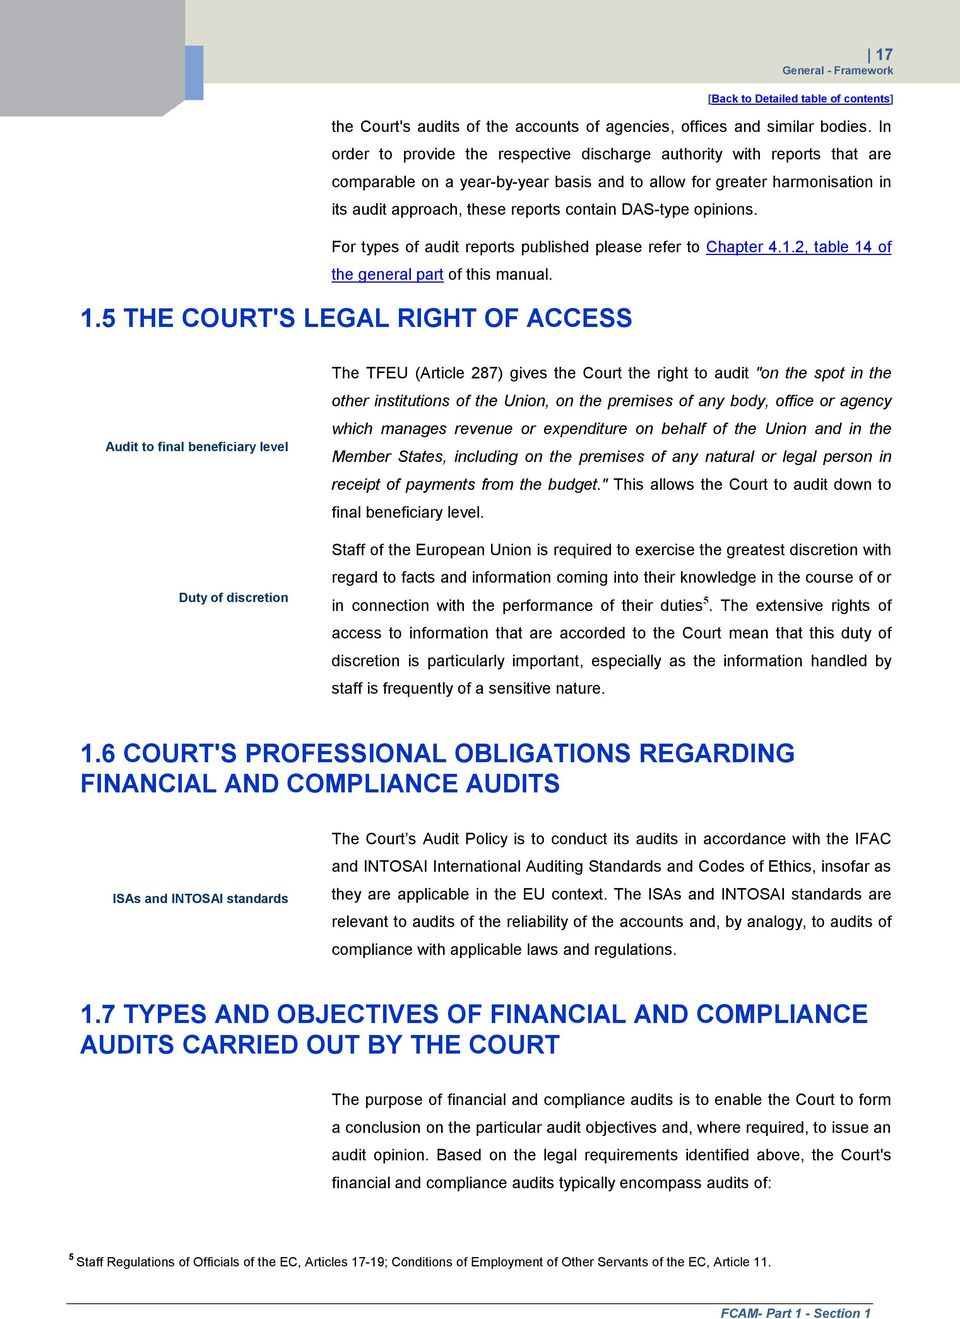 For types of audit reports published please refer to Chapter 4.1